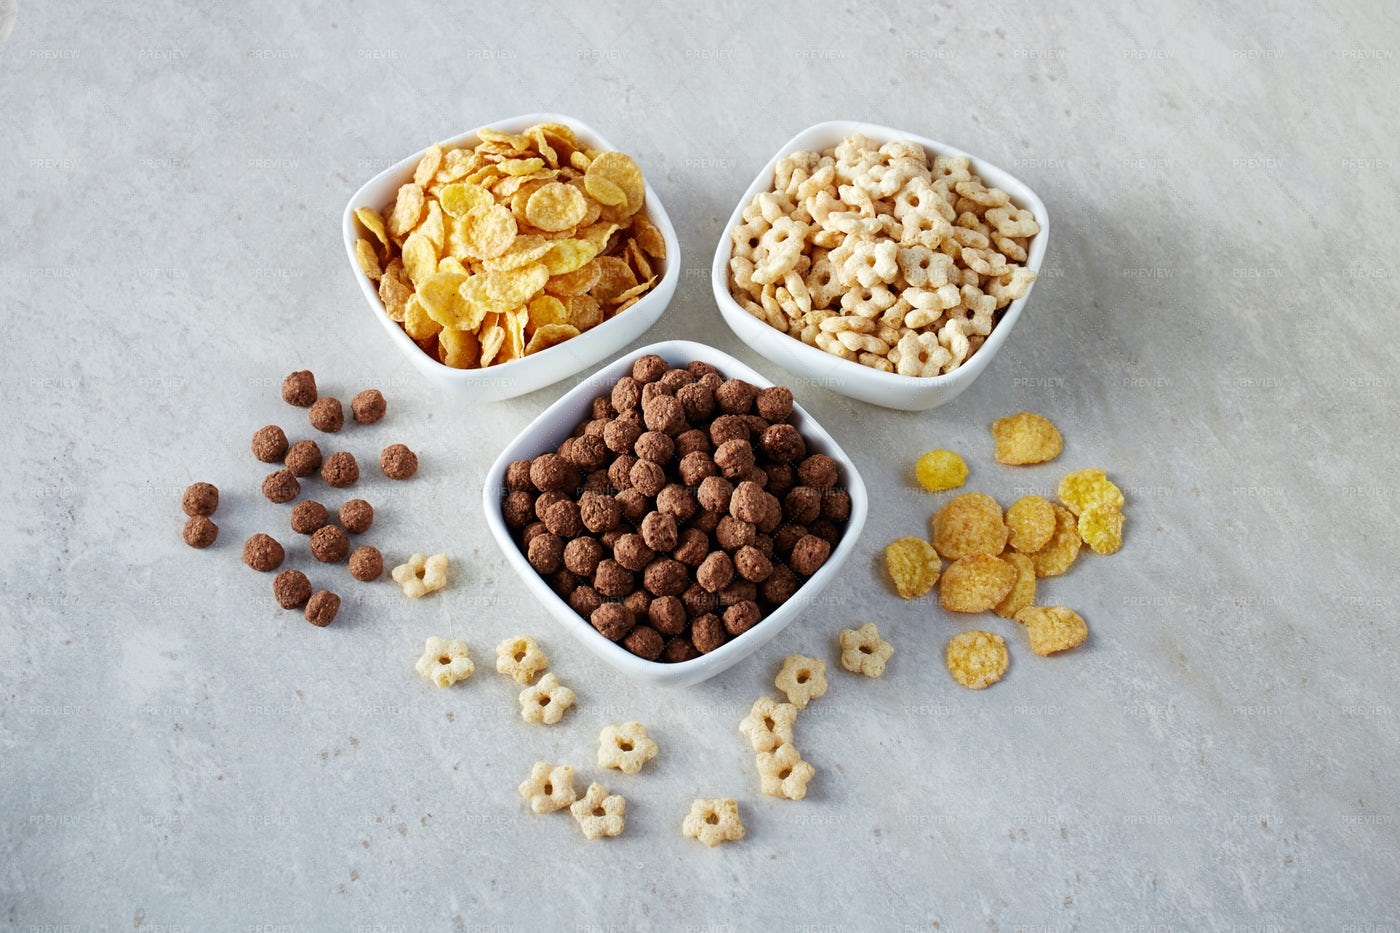 Cereals In Bowls: Stock Photos